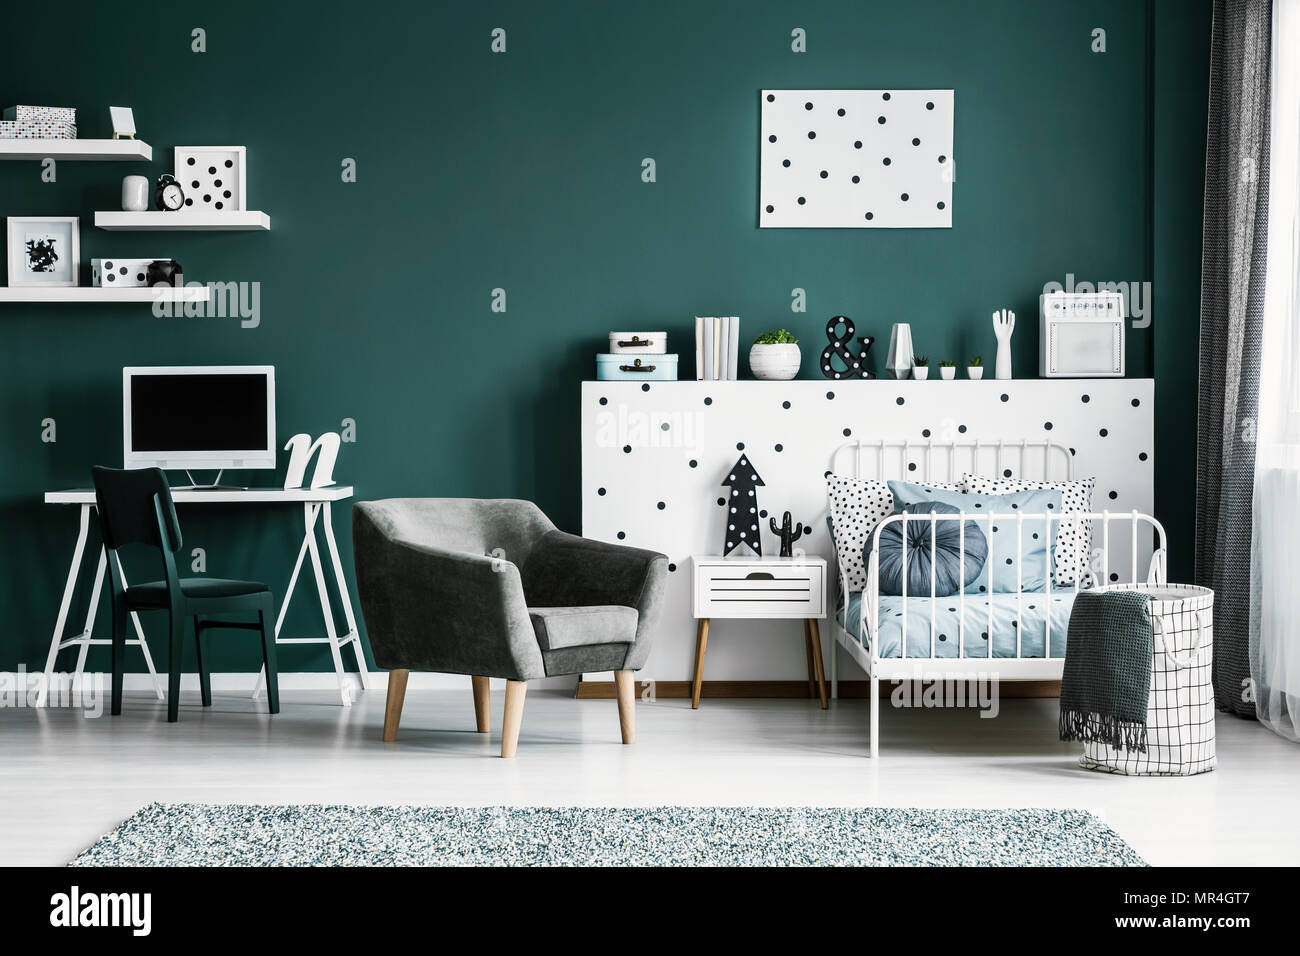 Workspace With A Computer In A Stylish Bedroom Interior For A Teenage Student With White Furniture And Dark Green Walls Stock Photo Alamy